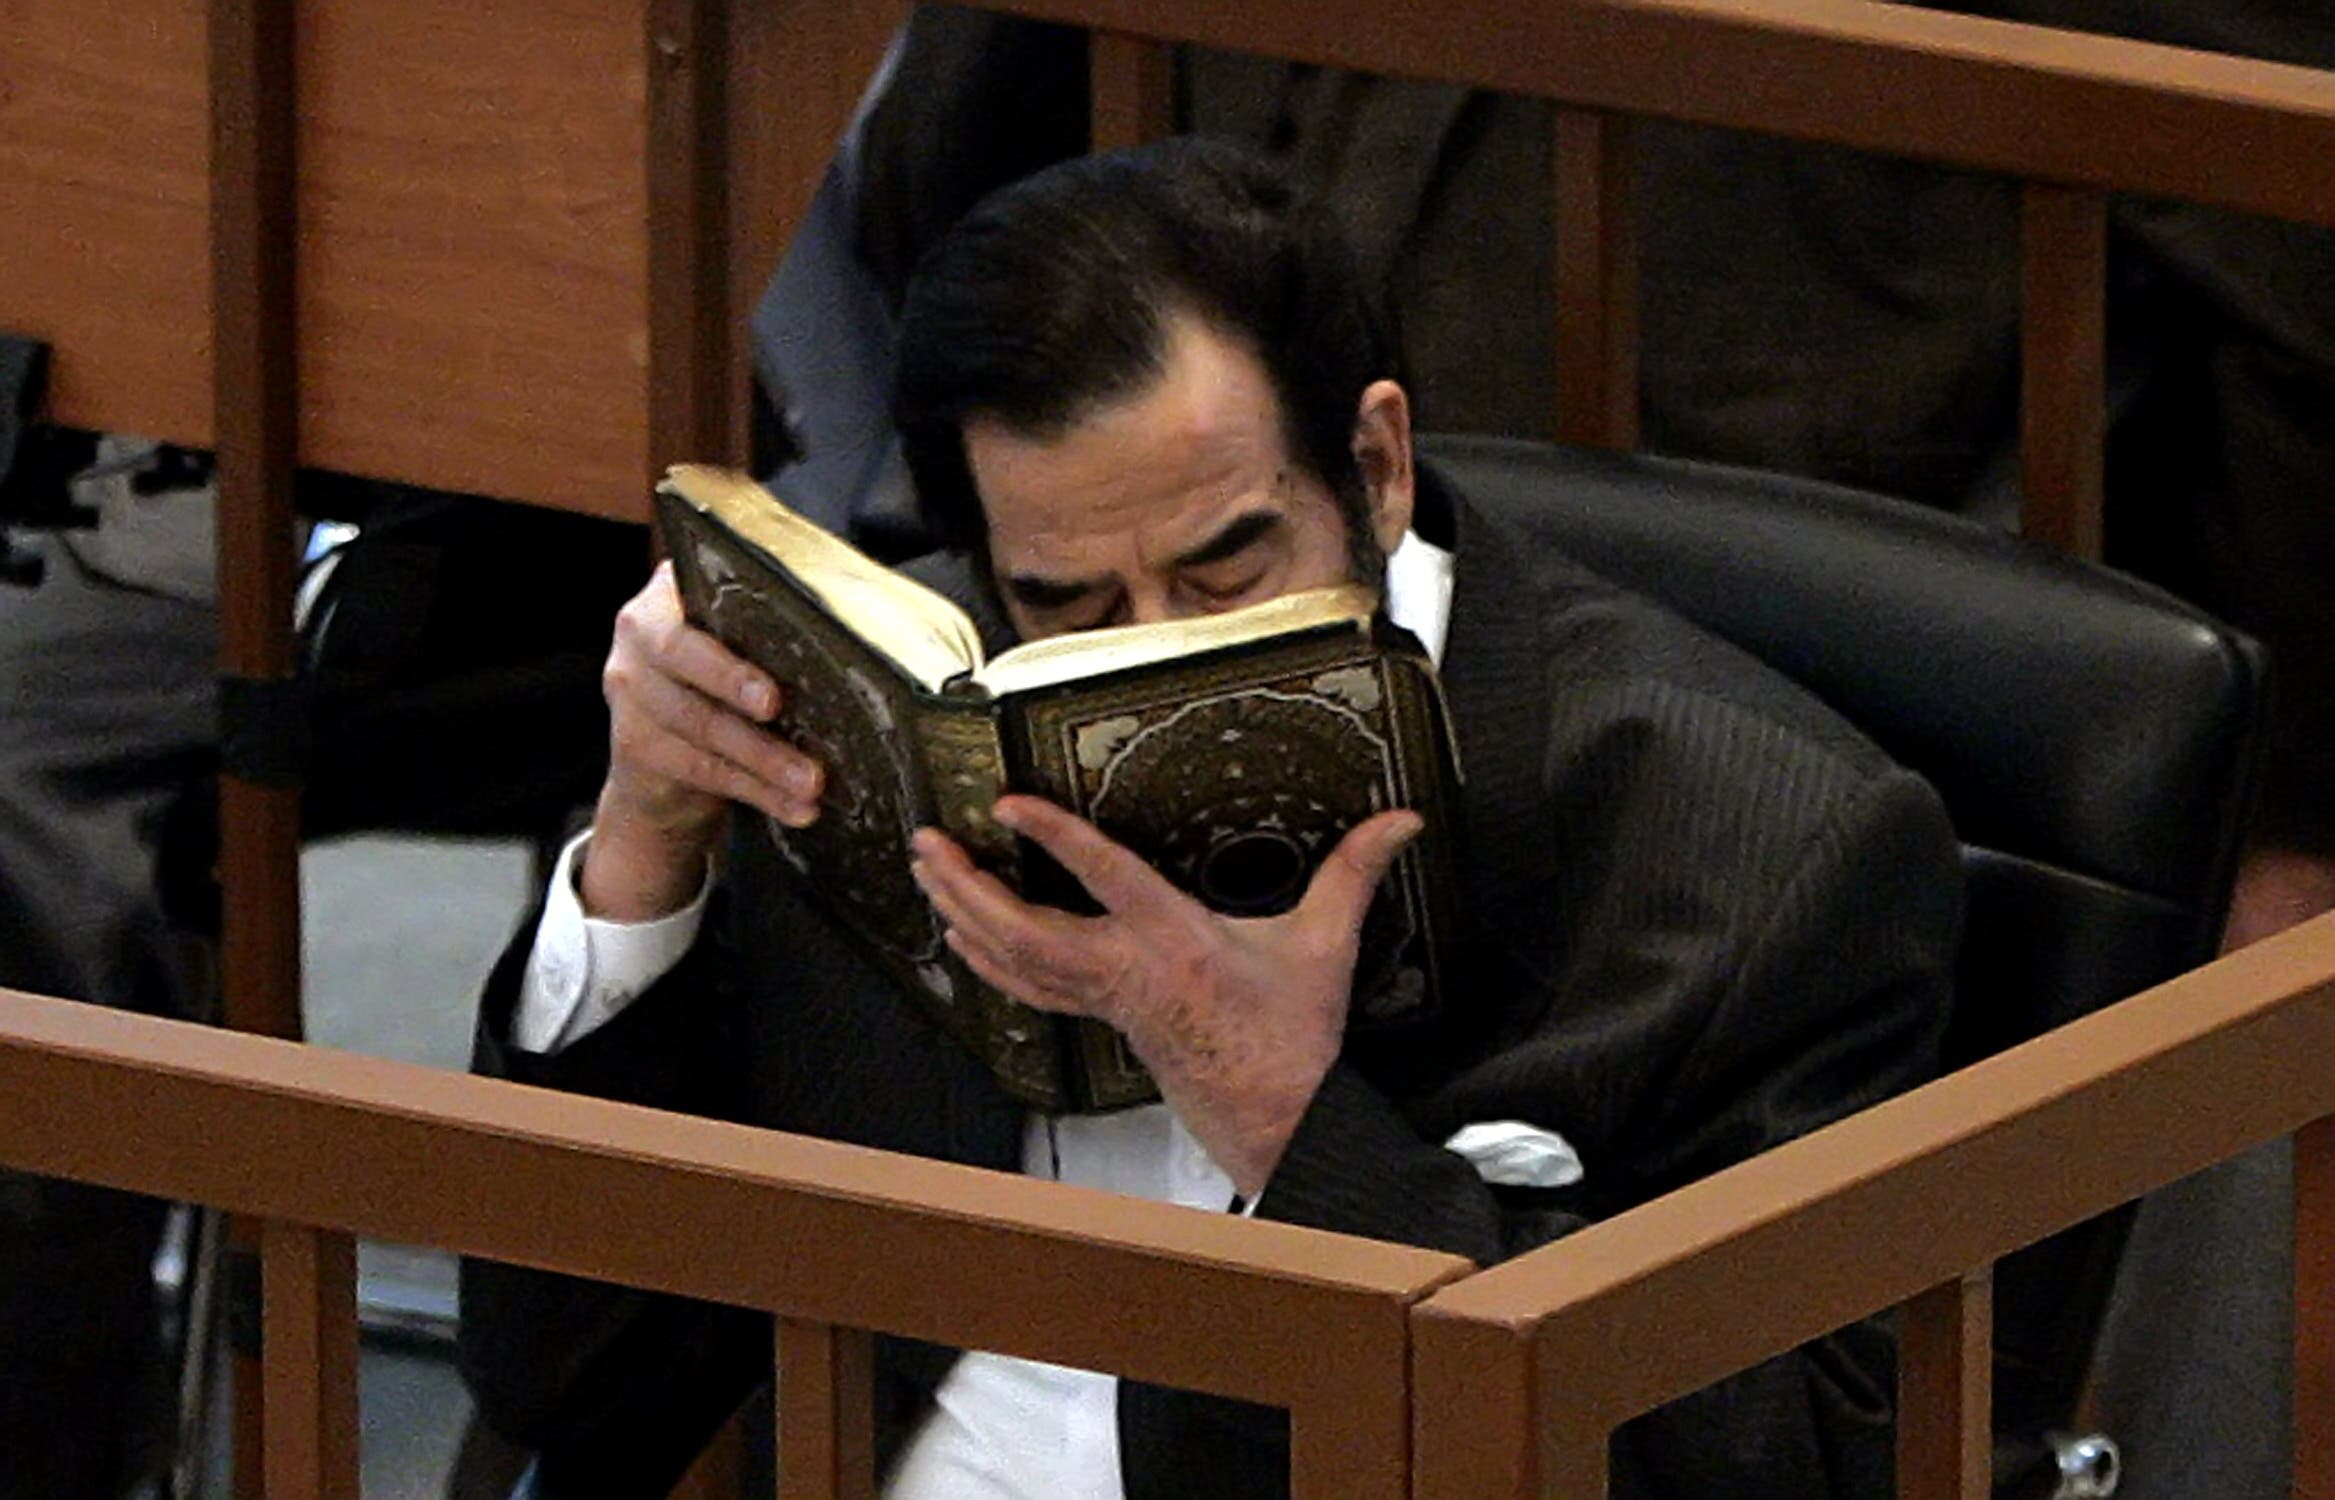 Former Iraqi President Saddam Hussein kisses the Holy Koran moments after addressing the court during his trial in Baghdad, 06 December, 2005. (AFP)